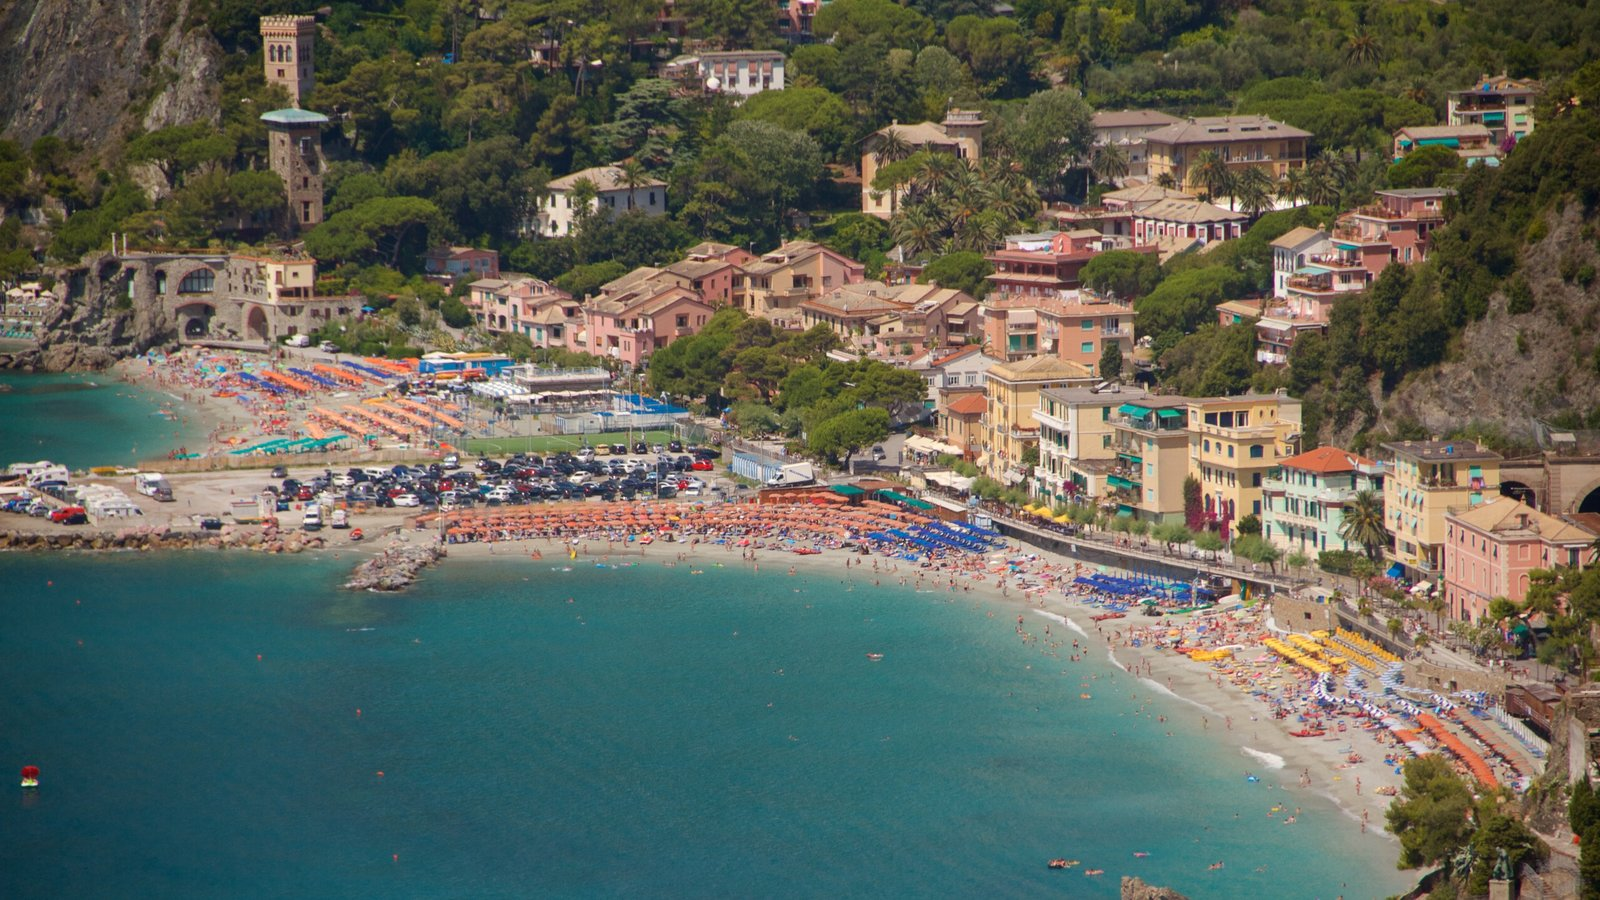 Monterosso Beach which includes general coastal views, a coastal town and a luxury hotel or resort